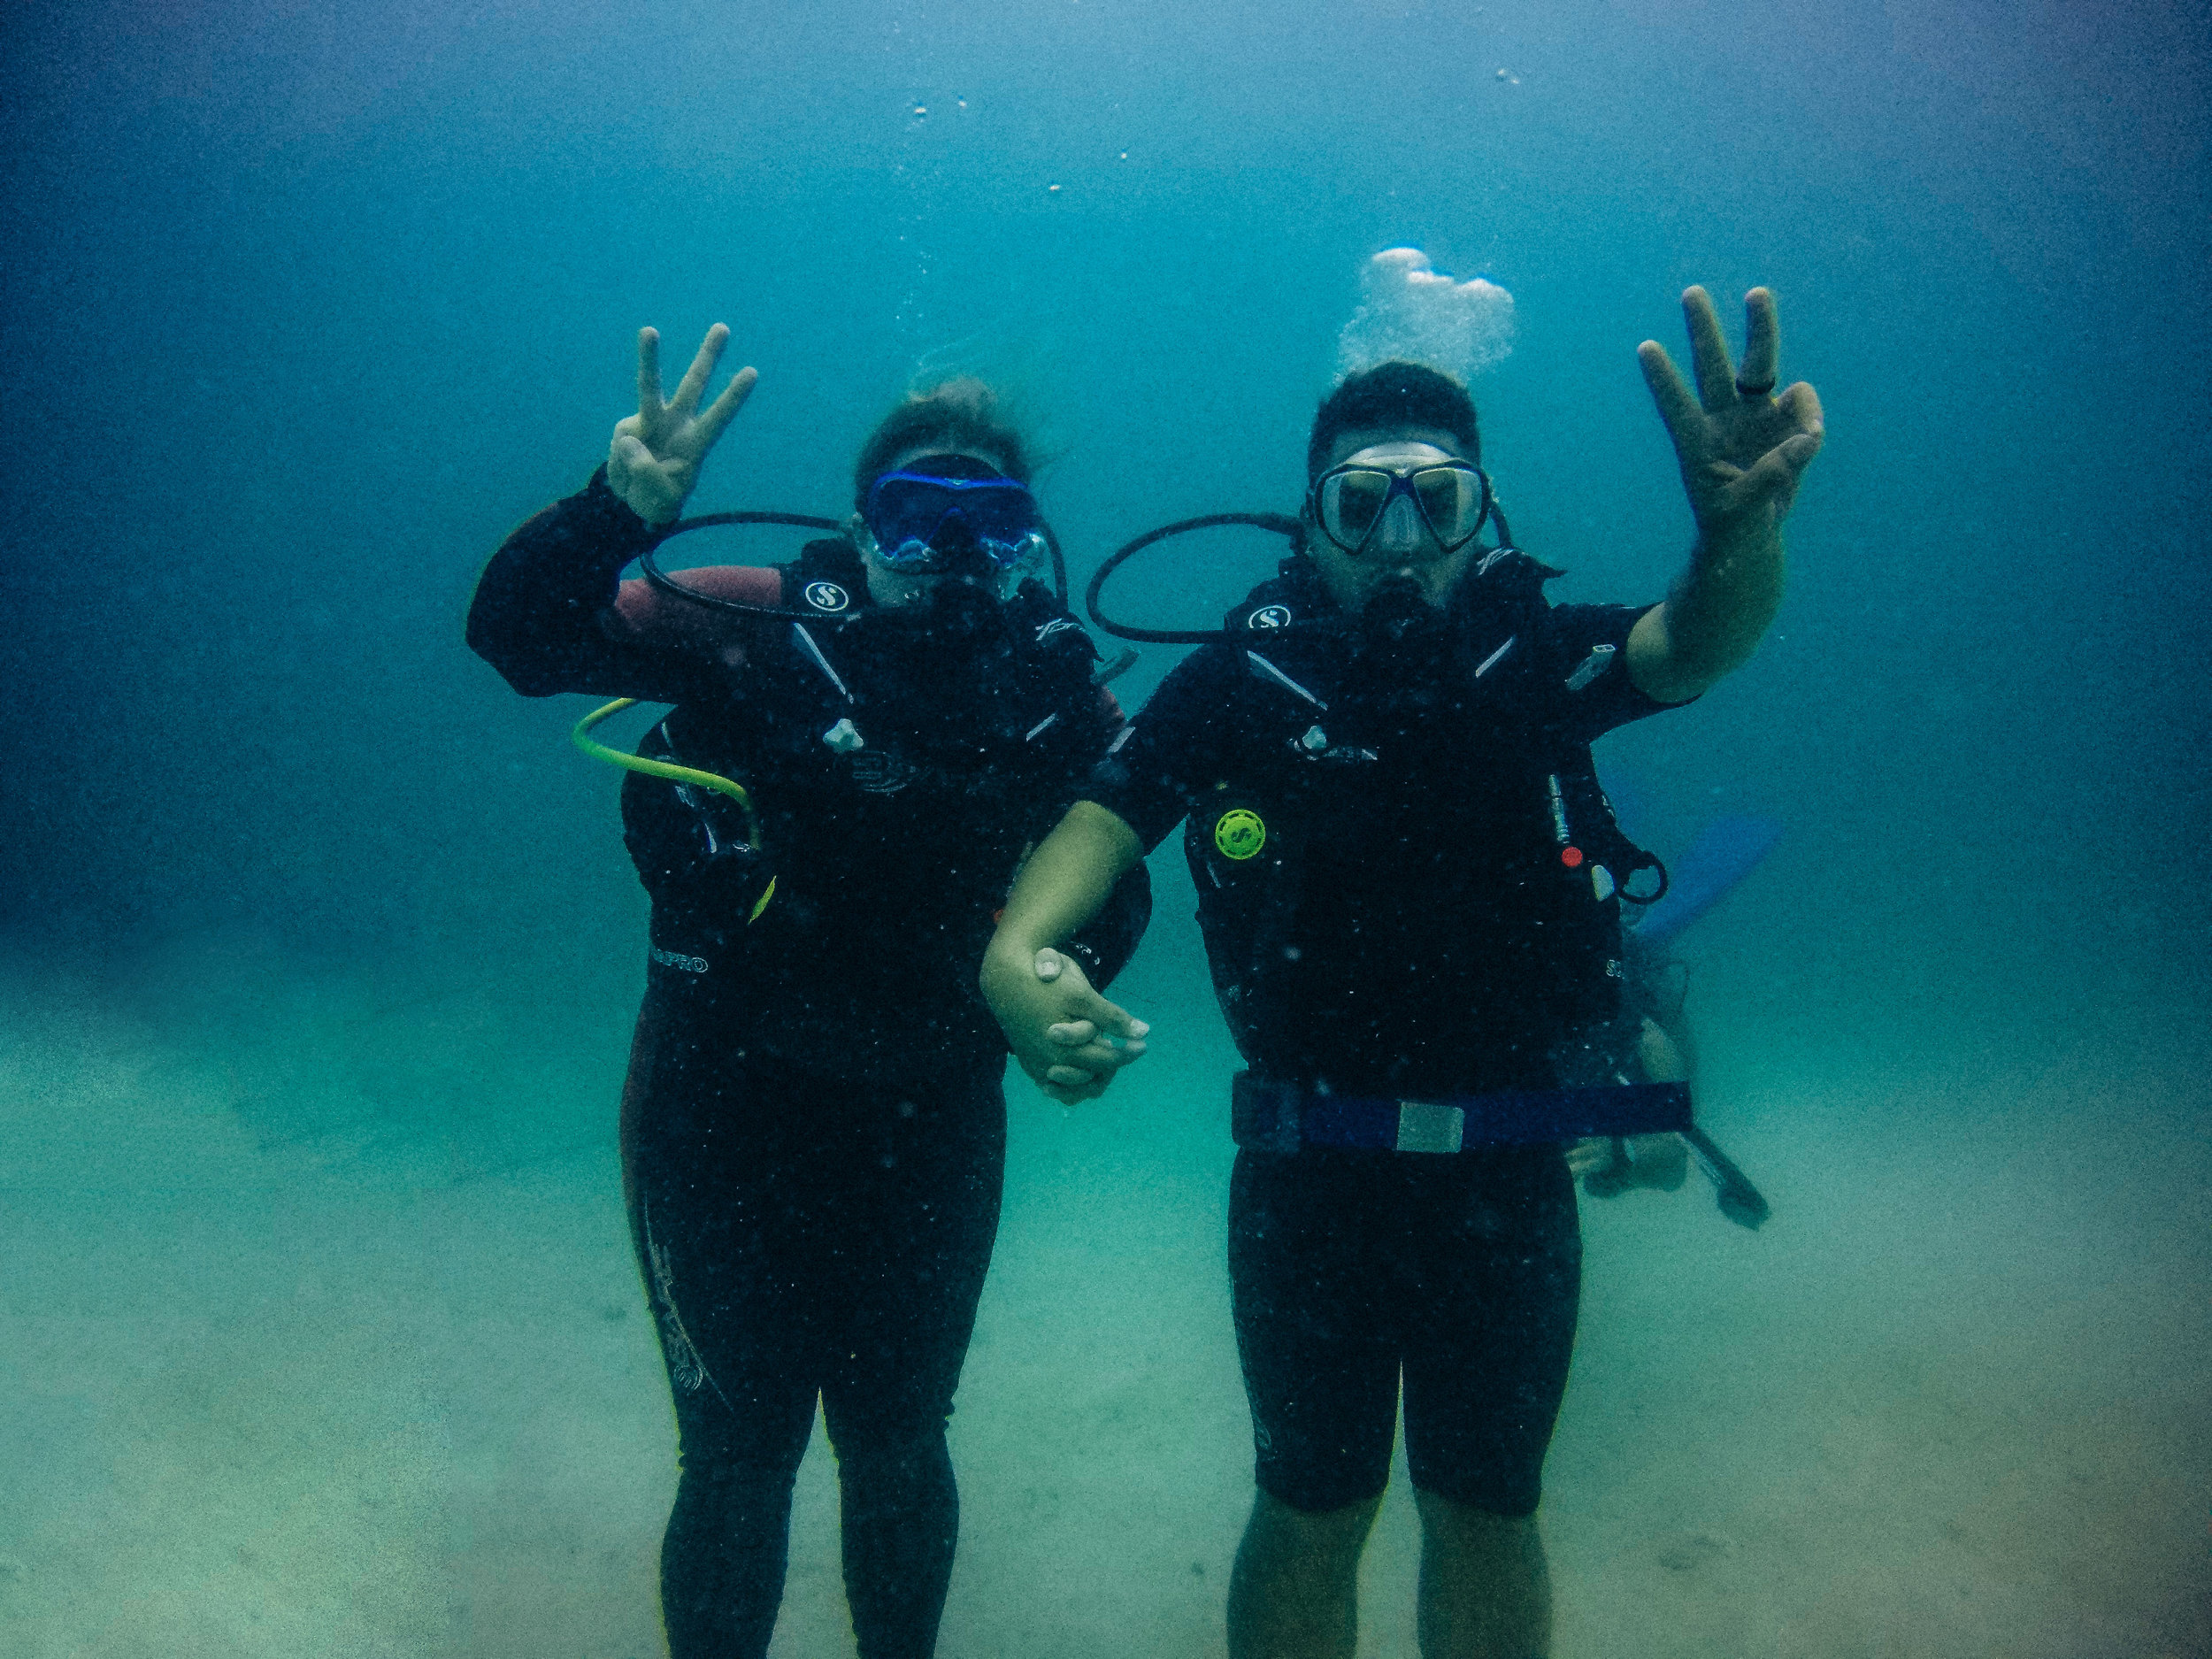 Celebrating our 3rd year anniversary underwater in Malaysia!